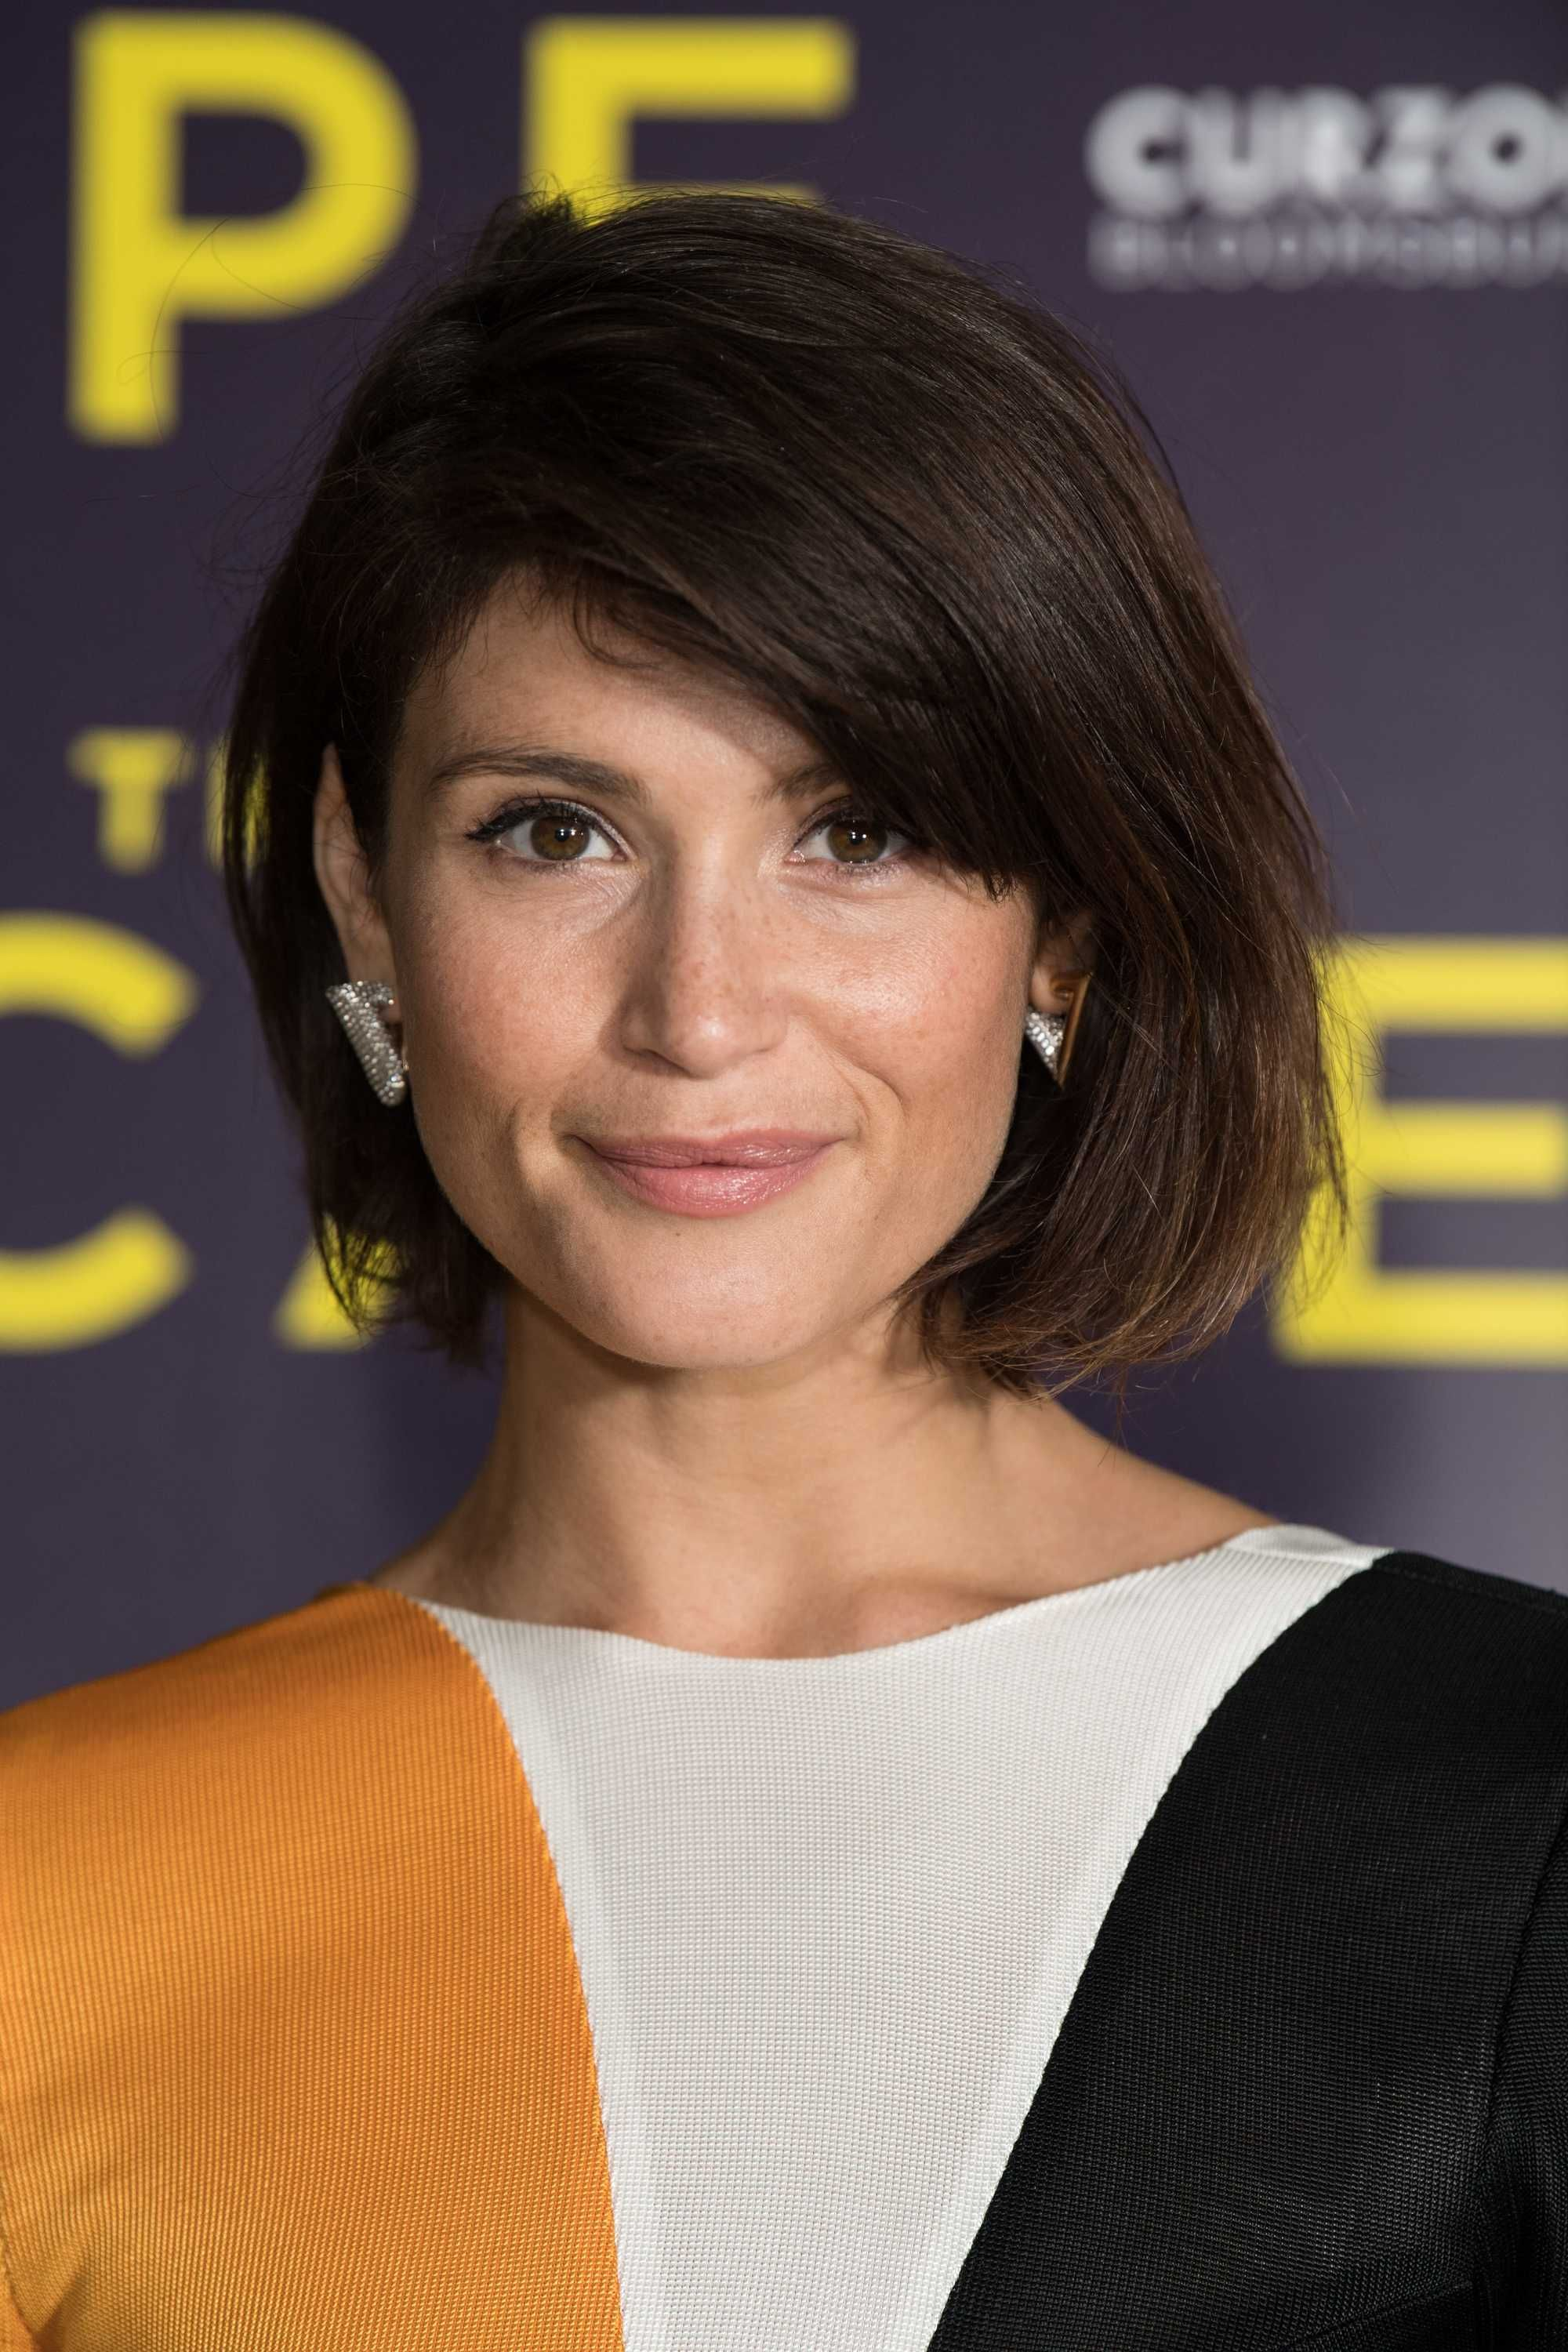 Bob Hairstyles For Fine Hair Gemma Arterton On The Red Carpet With Dark Brown Side Swept Grad Bob Hairstyles Bob Hairstyles For Fine Hair Short Bob Hairstyles